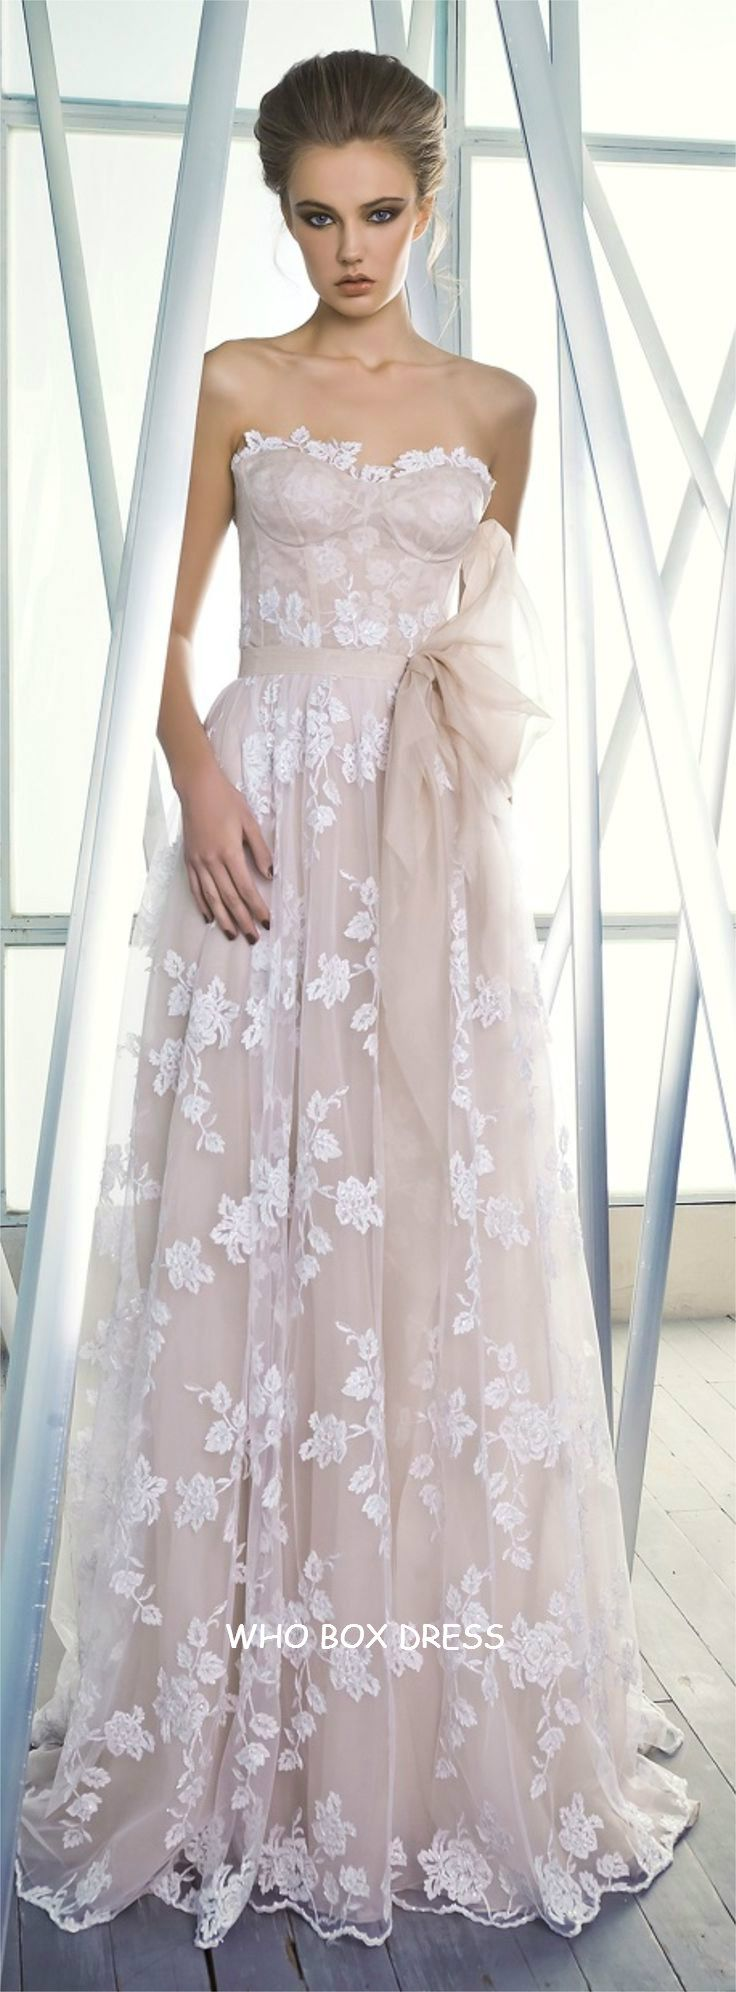 65 best say yes to the dress images on pinterest for Pastel colored wedding dresses